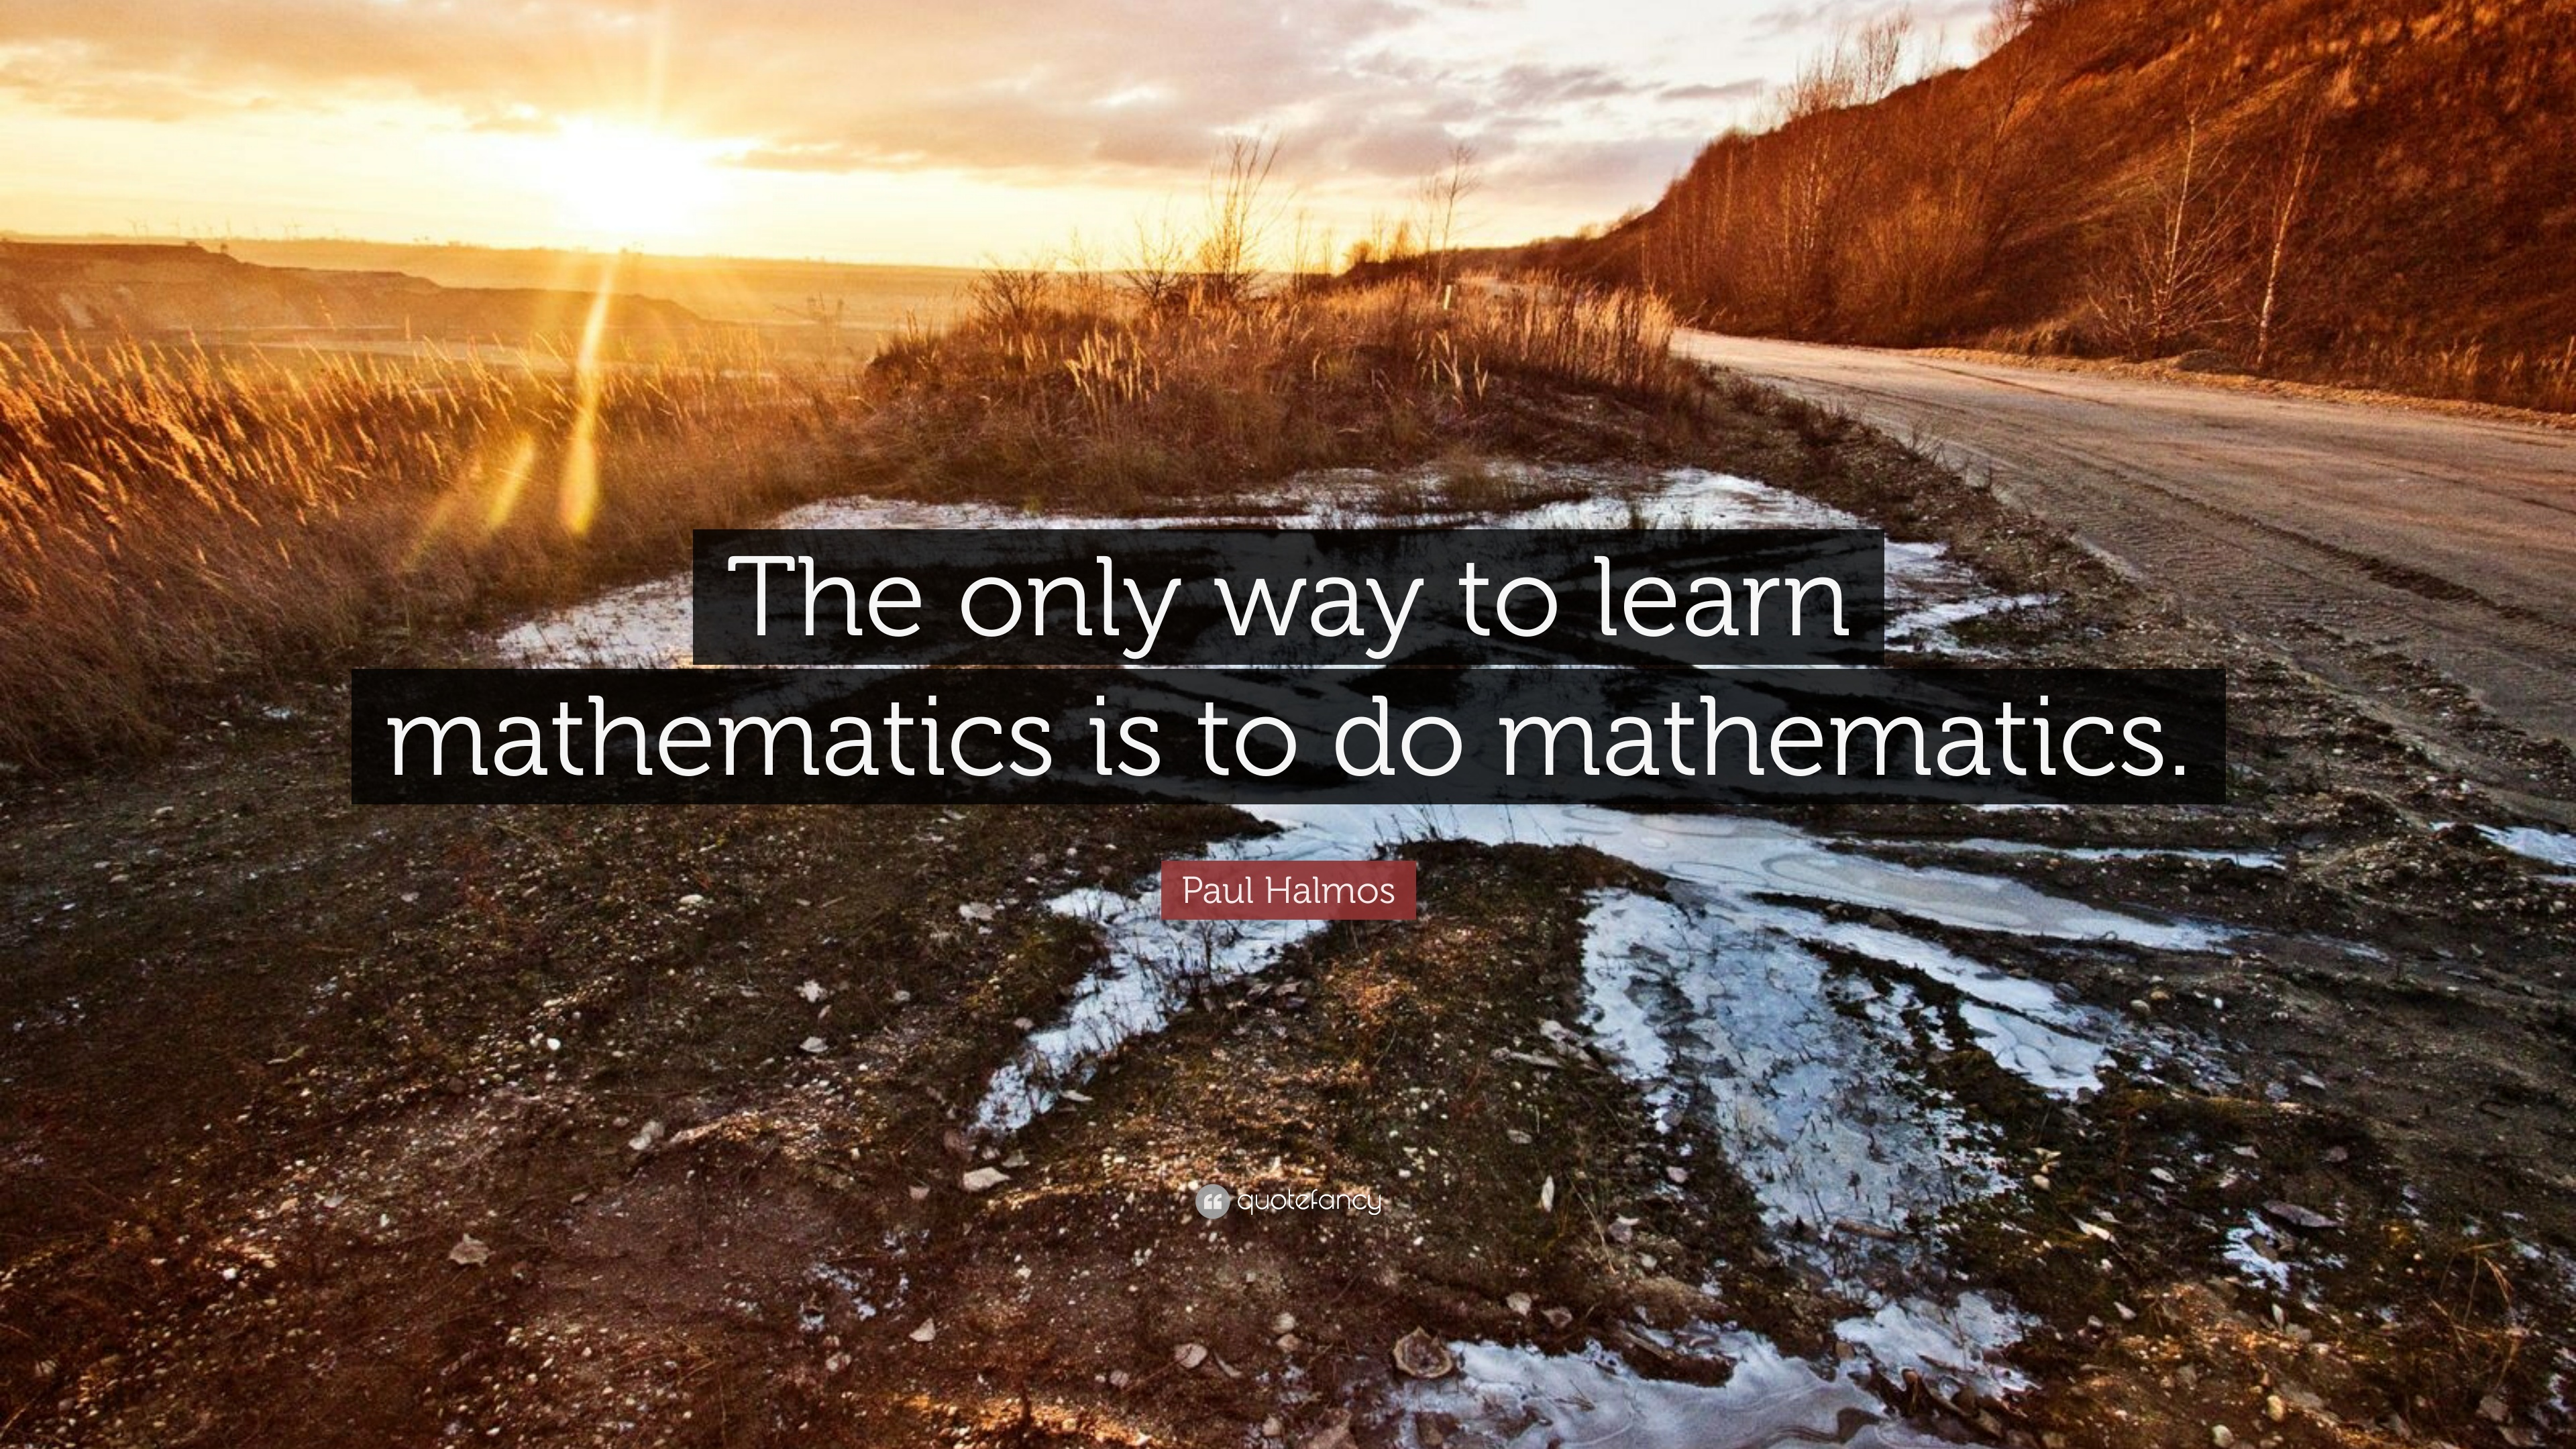 Worksheet Learn How To Do Math math quotes 40 wallpapers quotefancy only way to learn mathematics is do mathematics